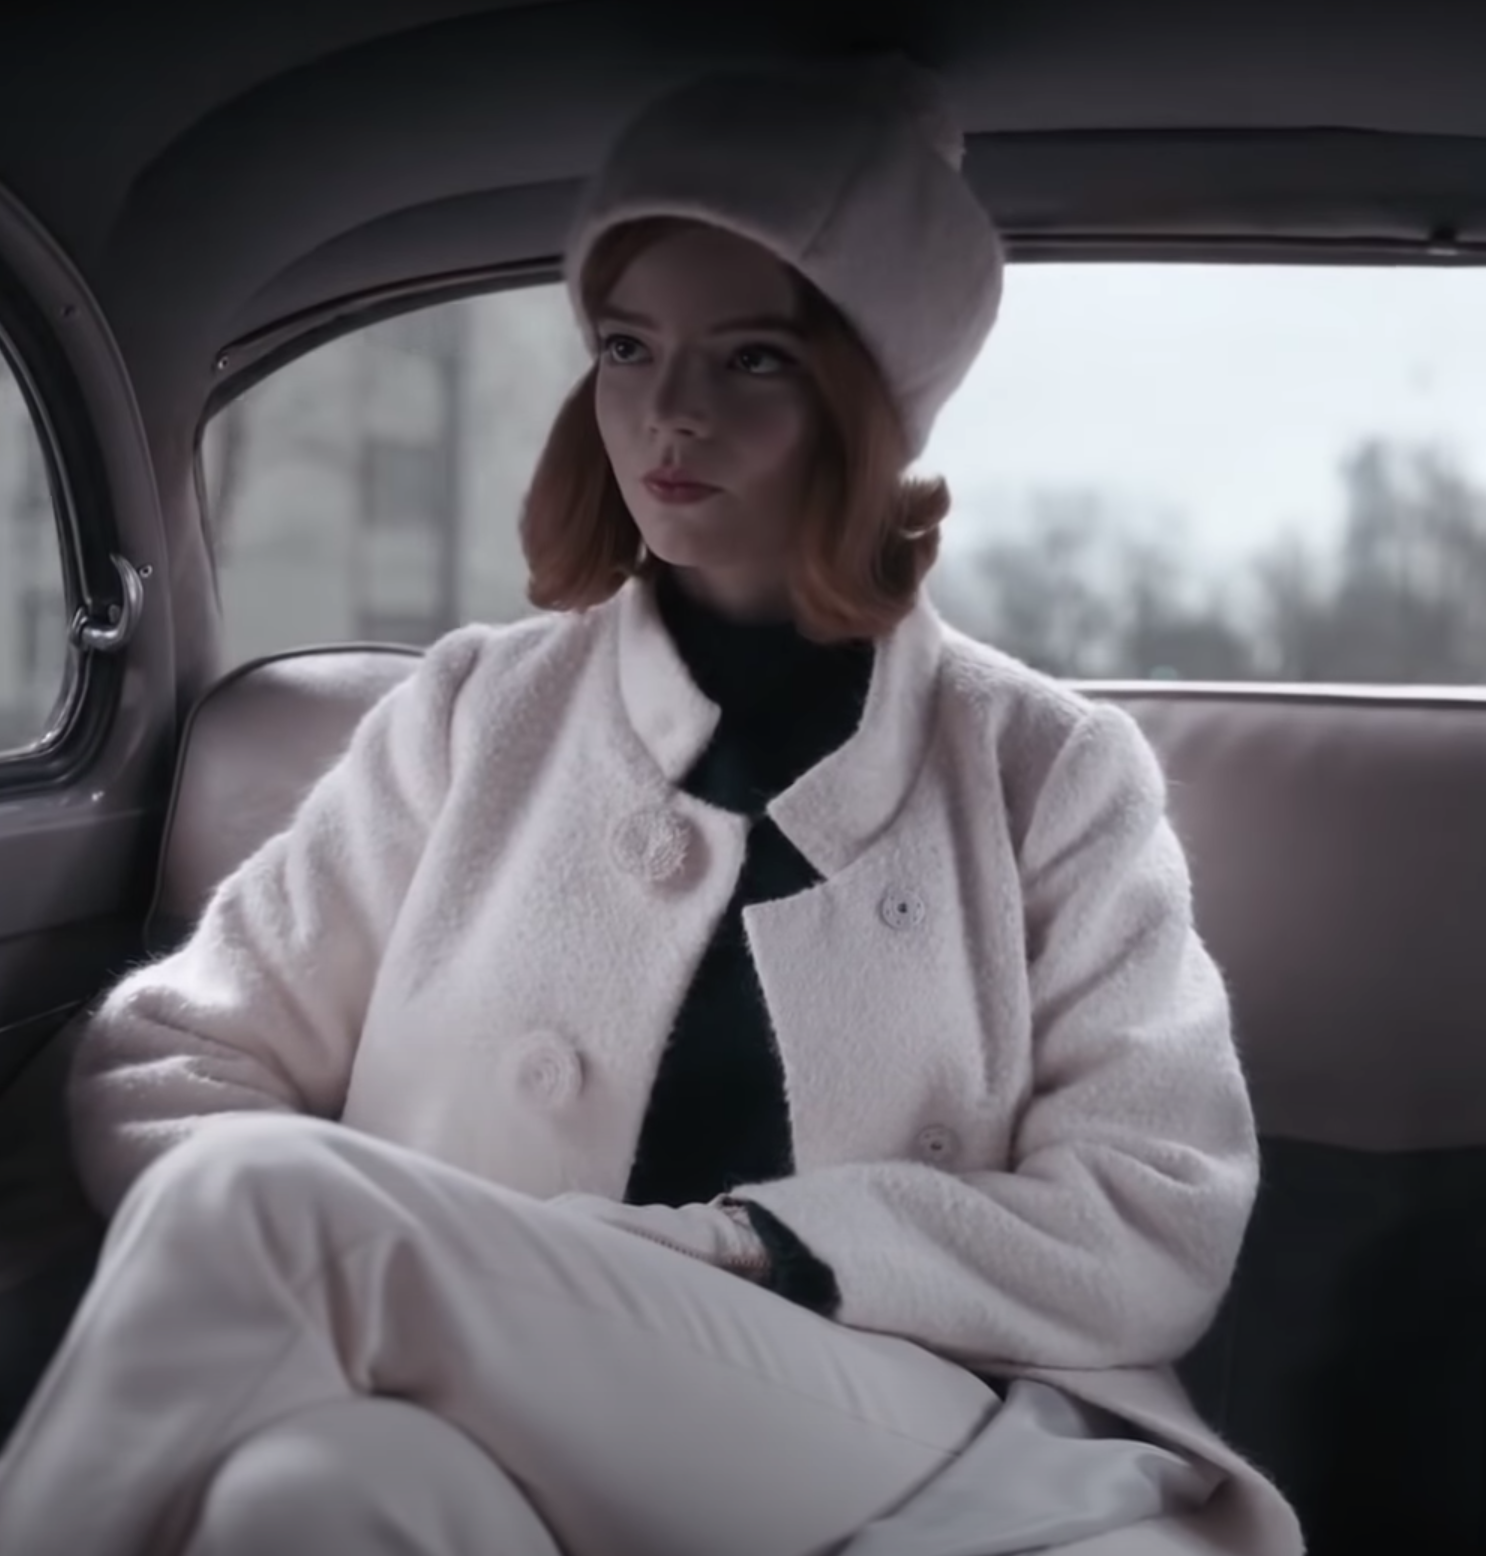 """Beth on """"The Queen's Gambit"""" wearing a white coat, pants, and hat"""